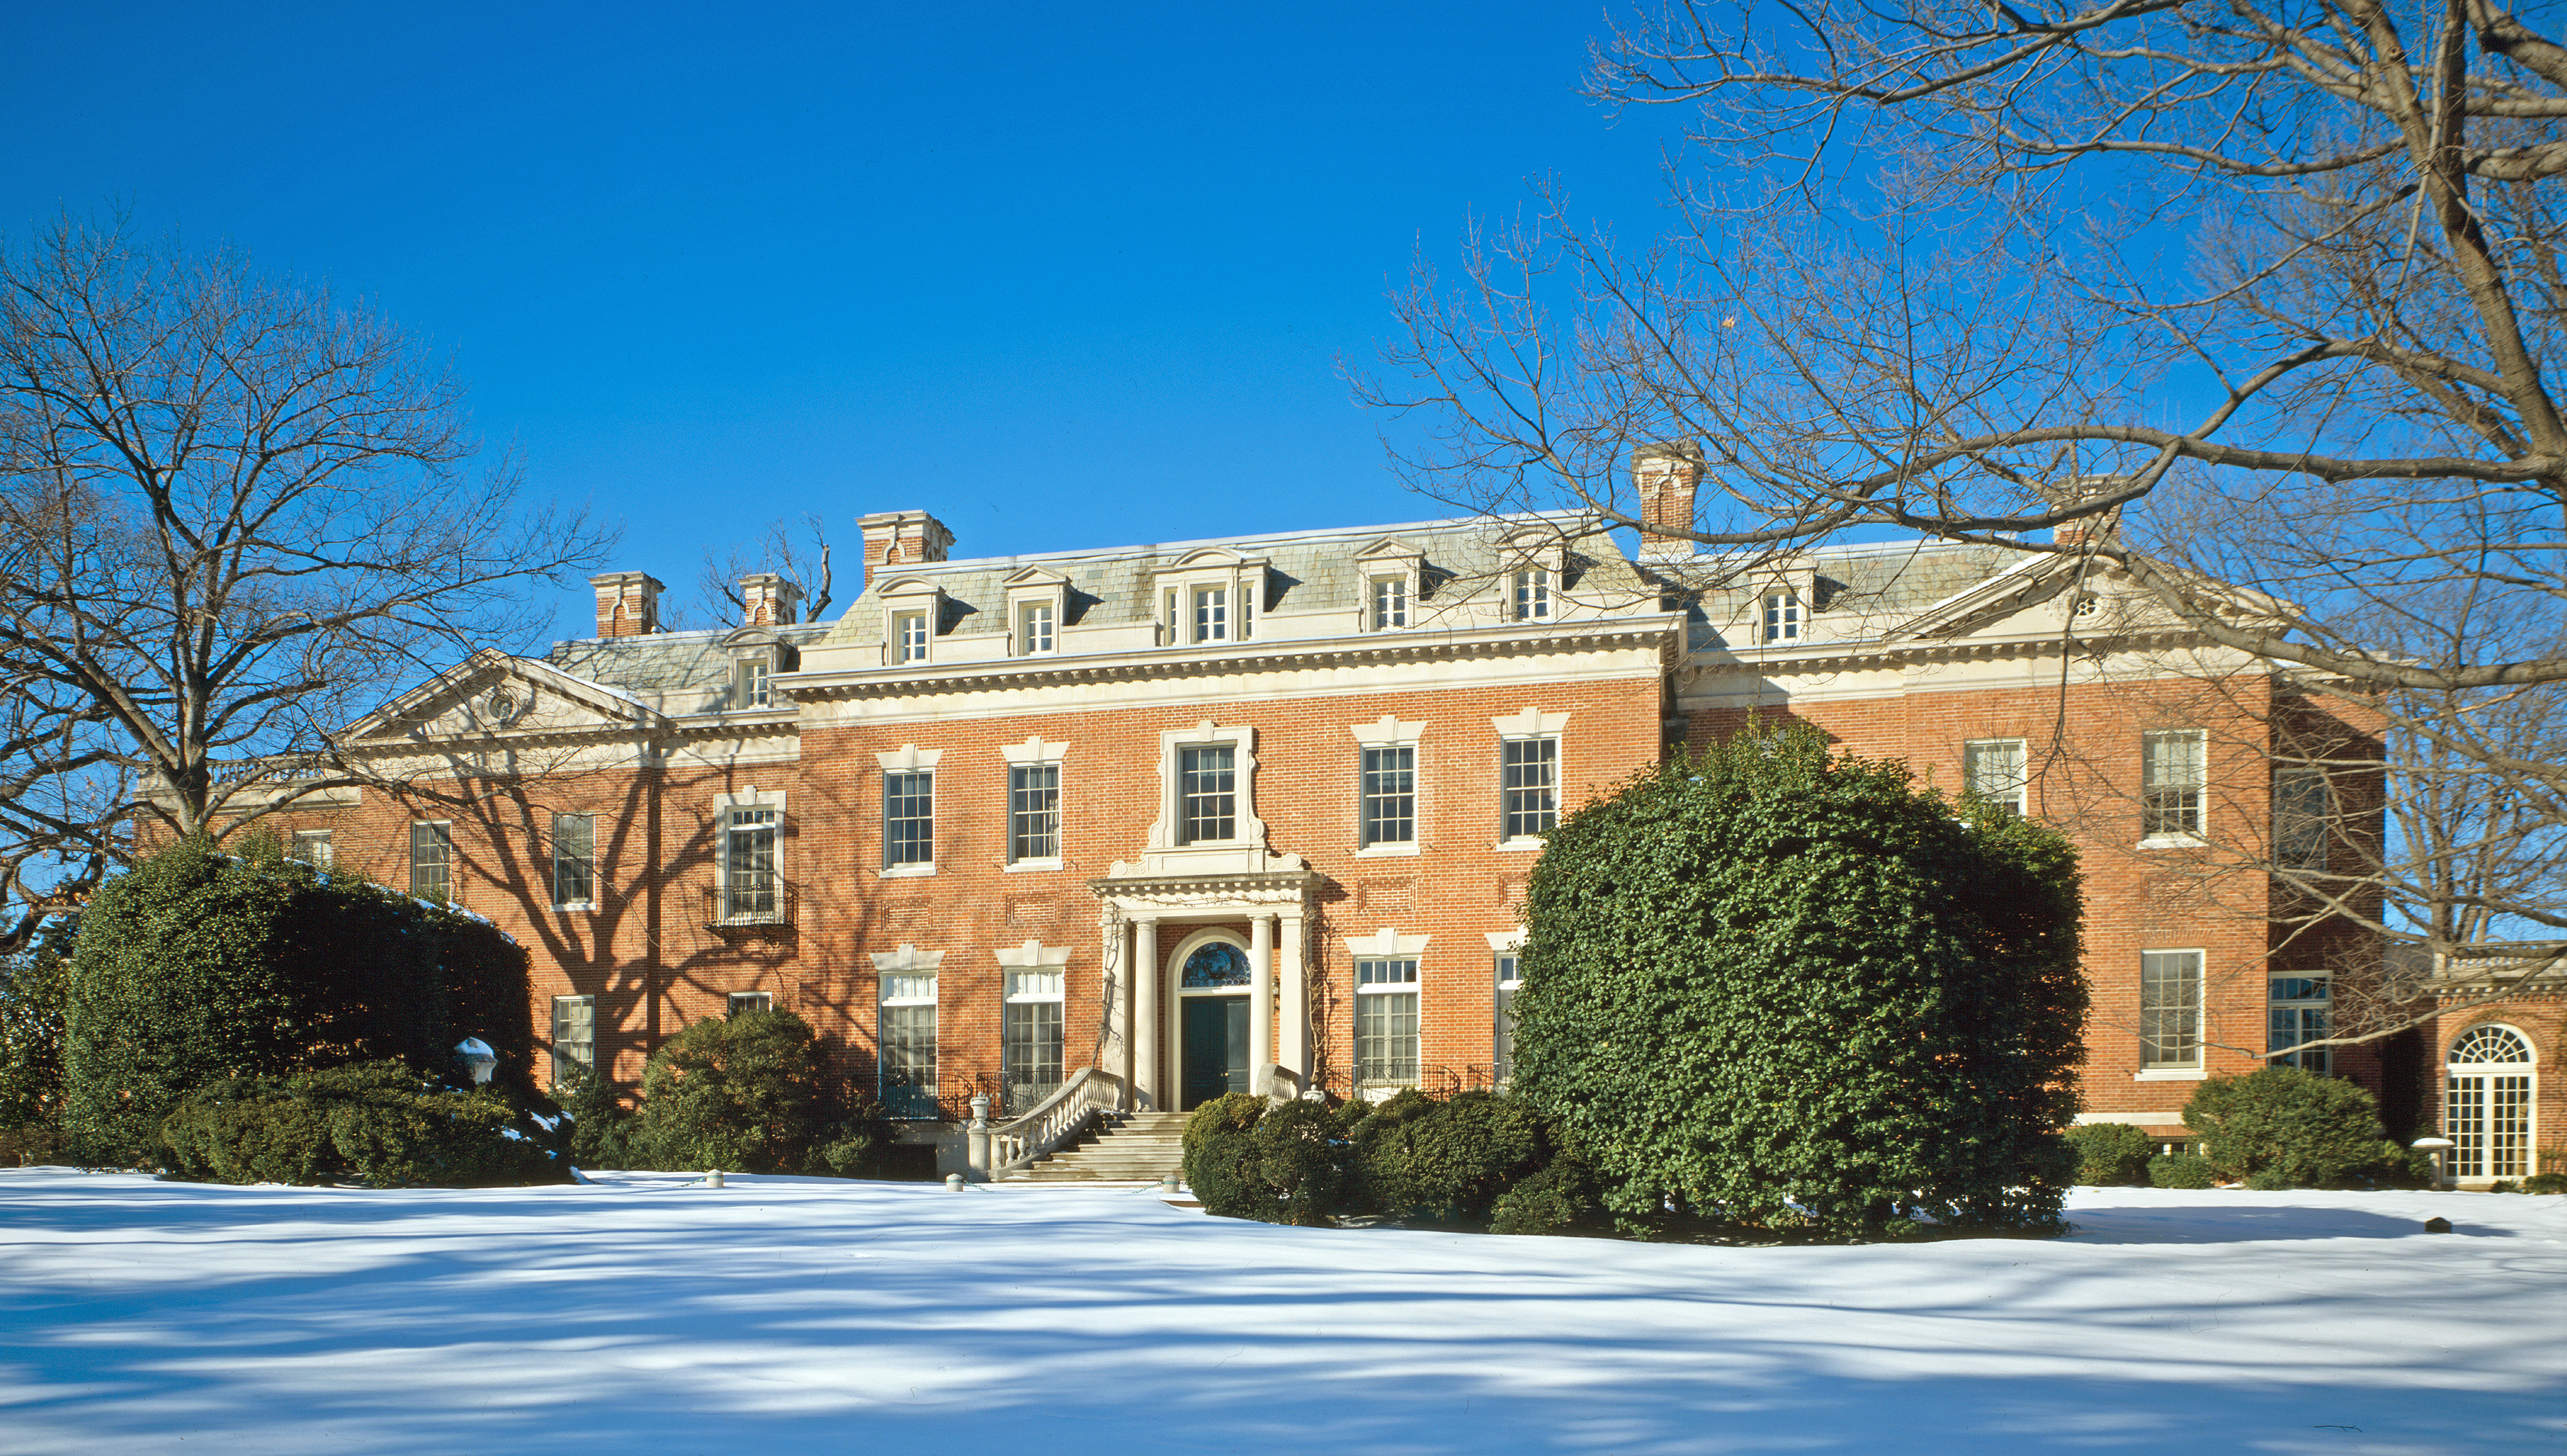 Dumbarton oaks wikipedia